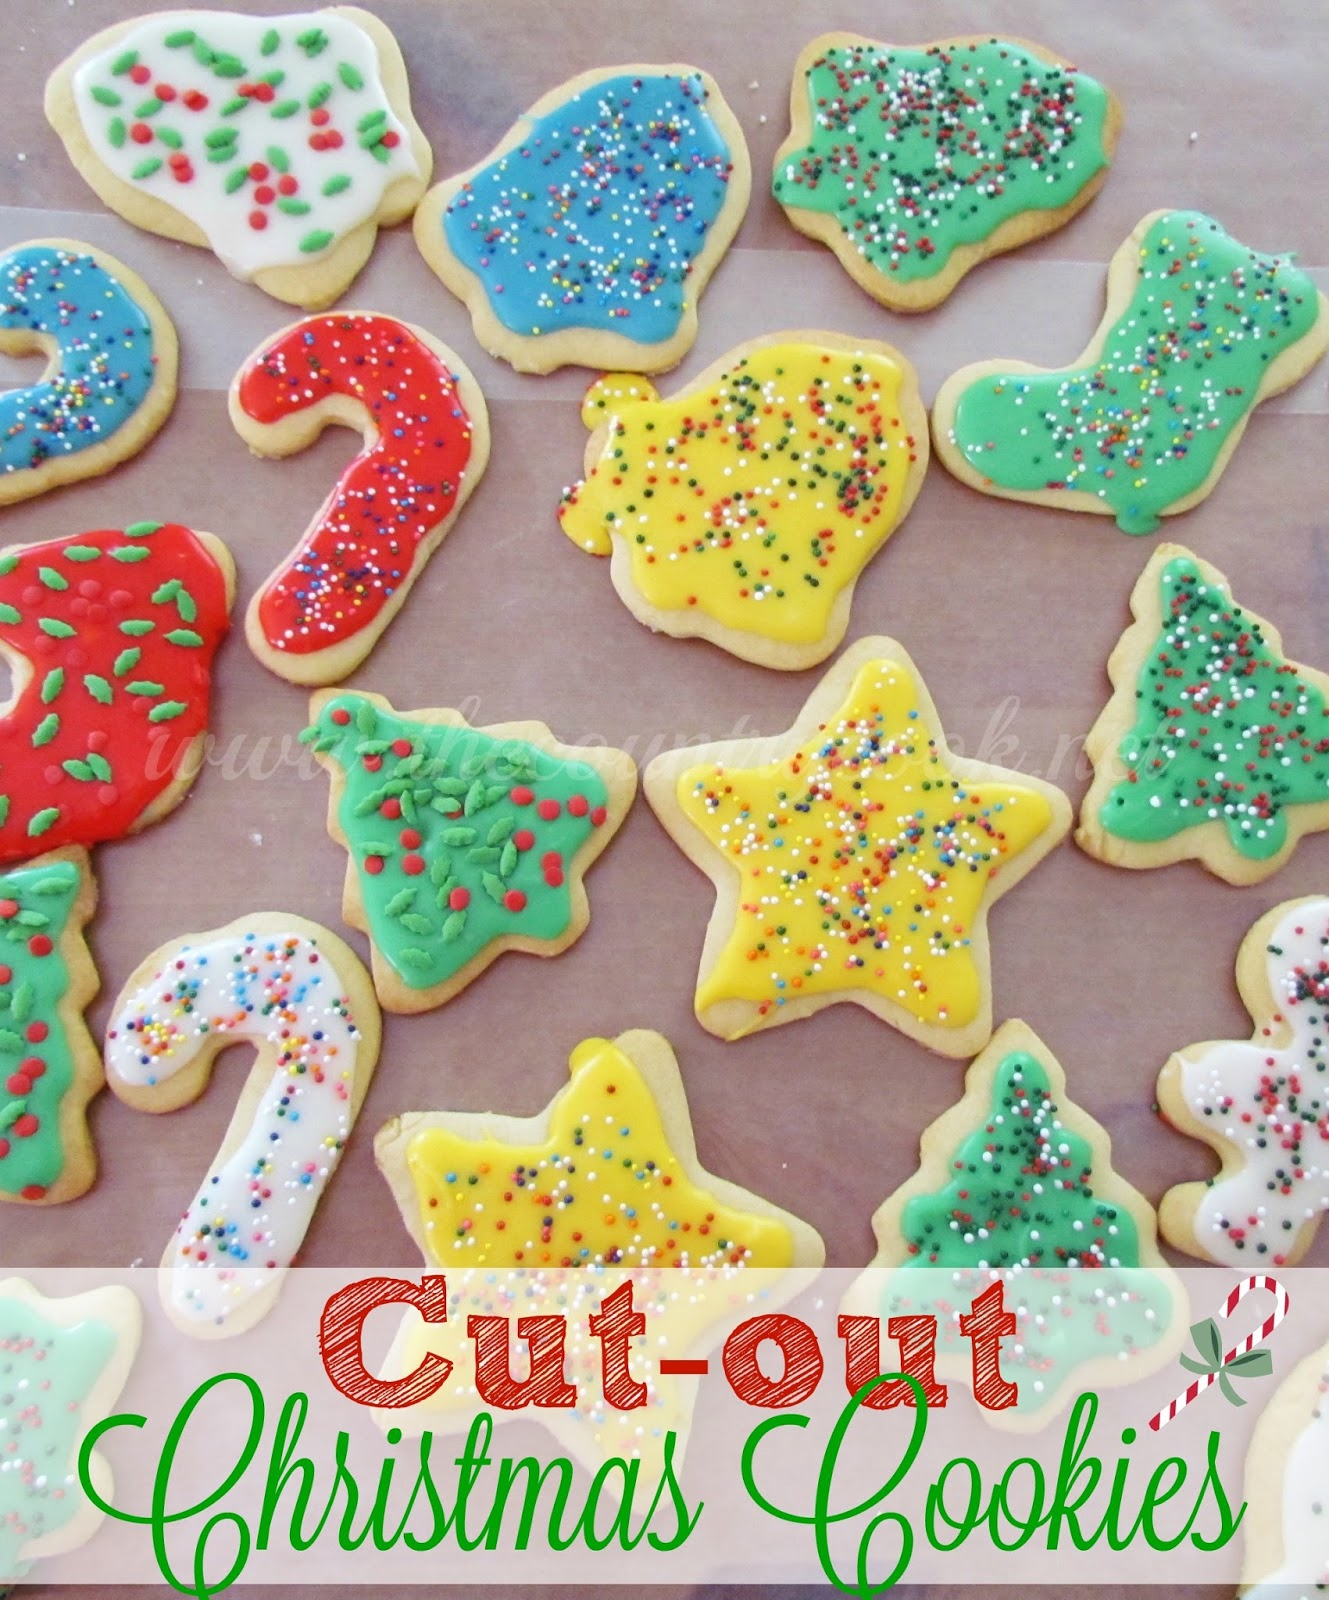 How to make christmas sugar cookies - And As For The Cookies I Shared I Had To Make My All Time Favorite Cut Out Sugar Cookies With Frosting And Sprinkles